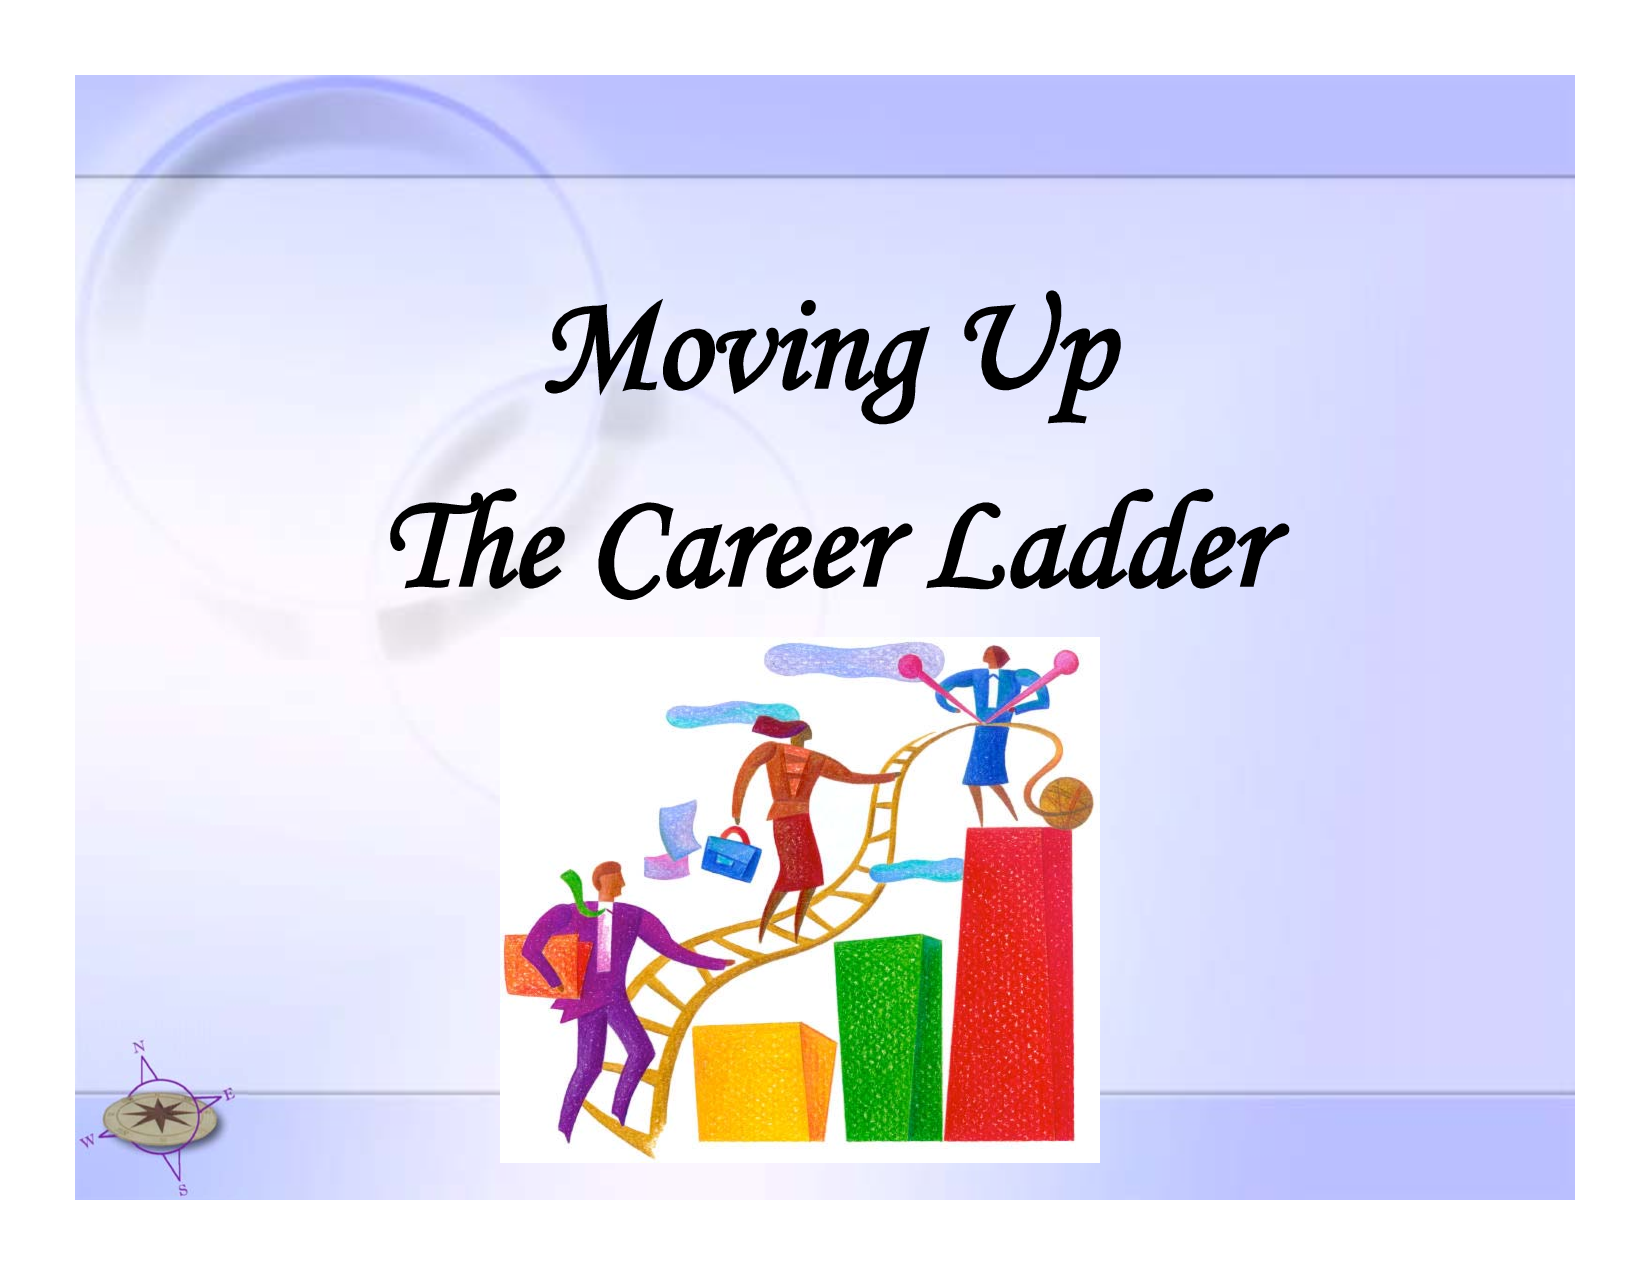 moving up the ladder quotes quotesgram follow us follow